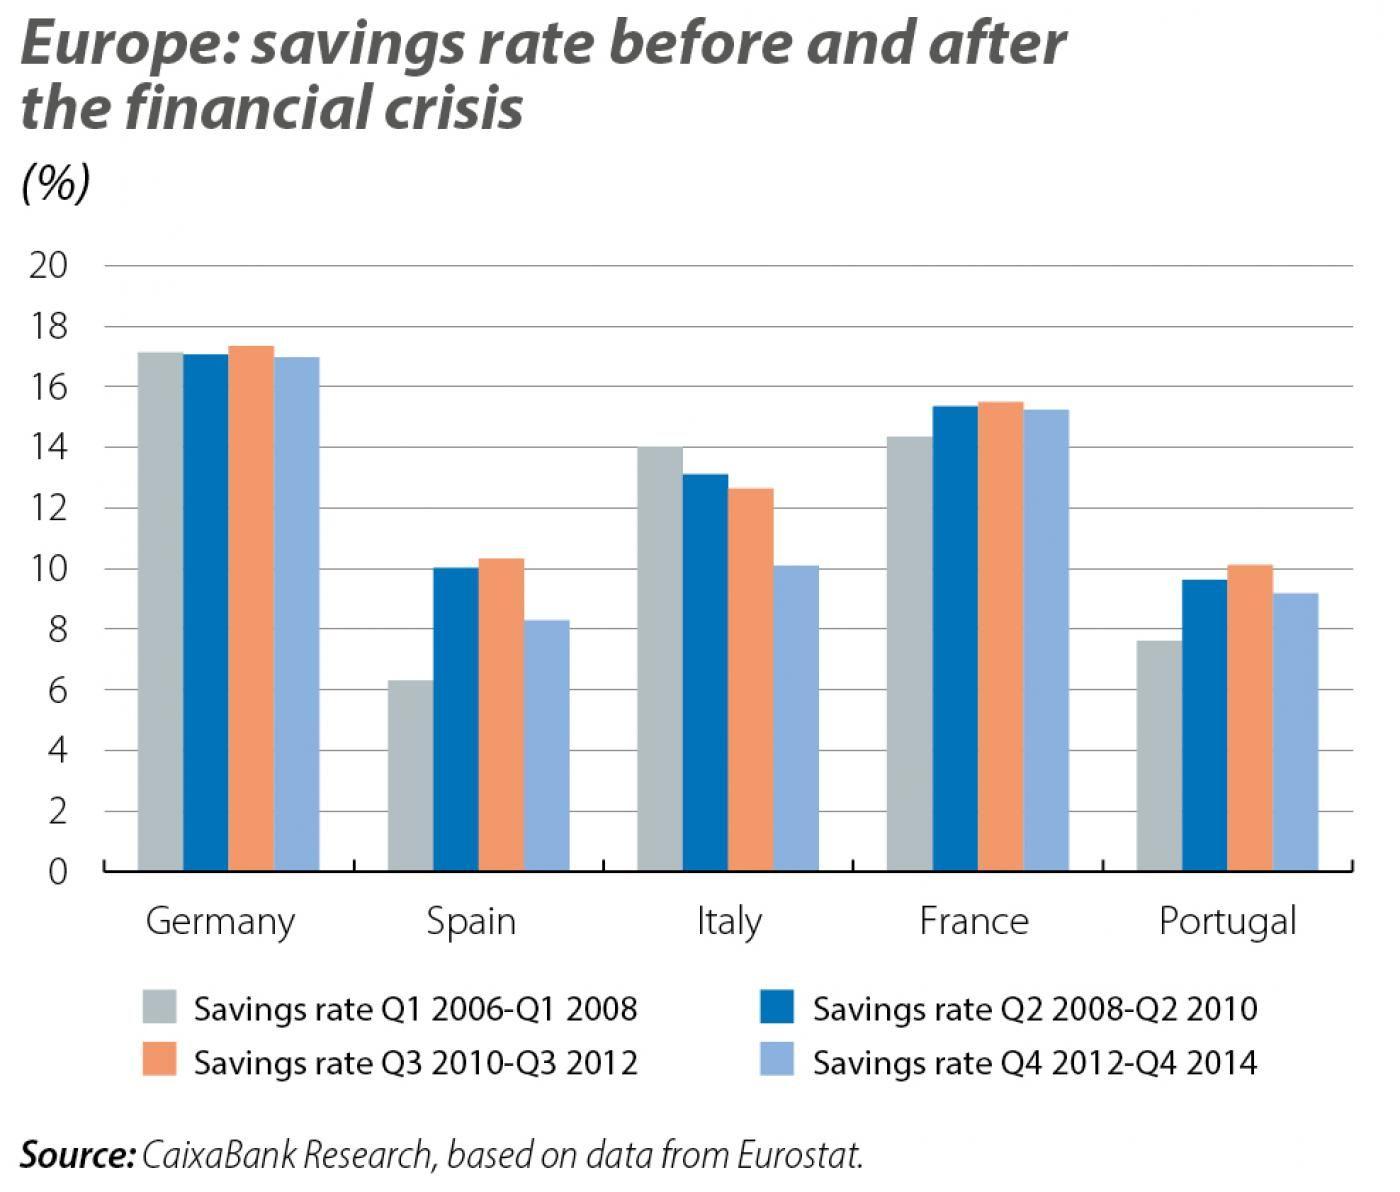 Europe: savings rate before and after the financial crisis